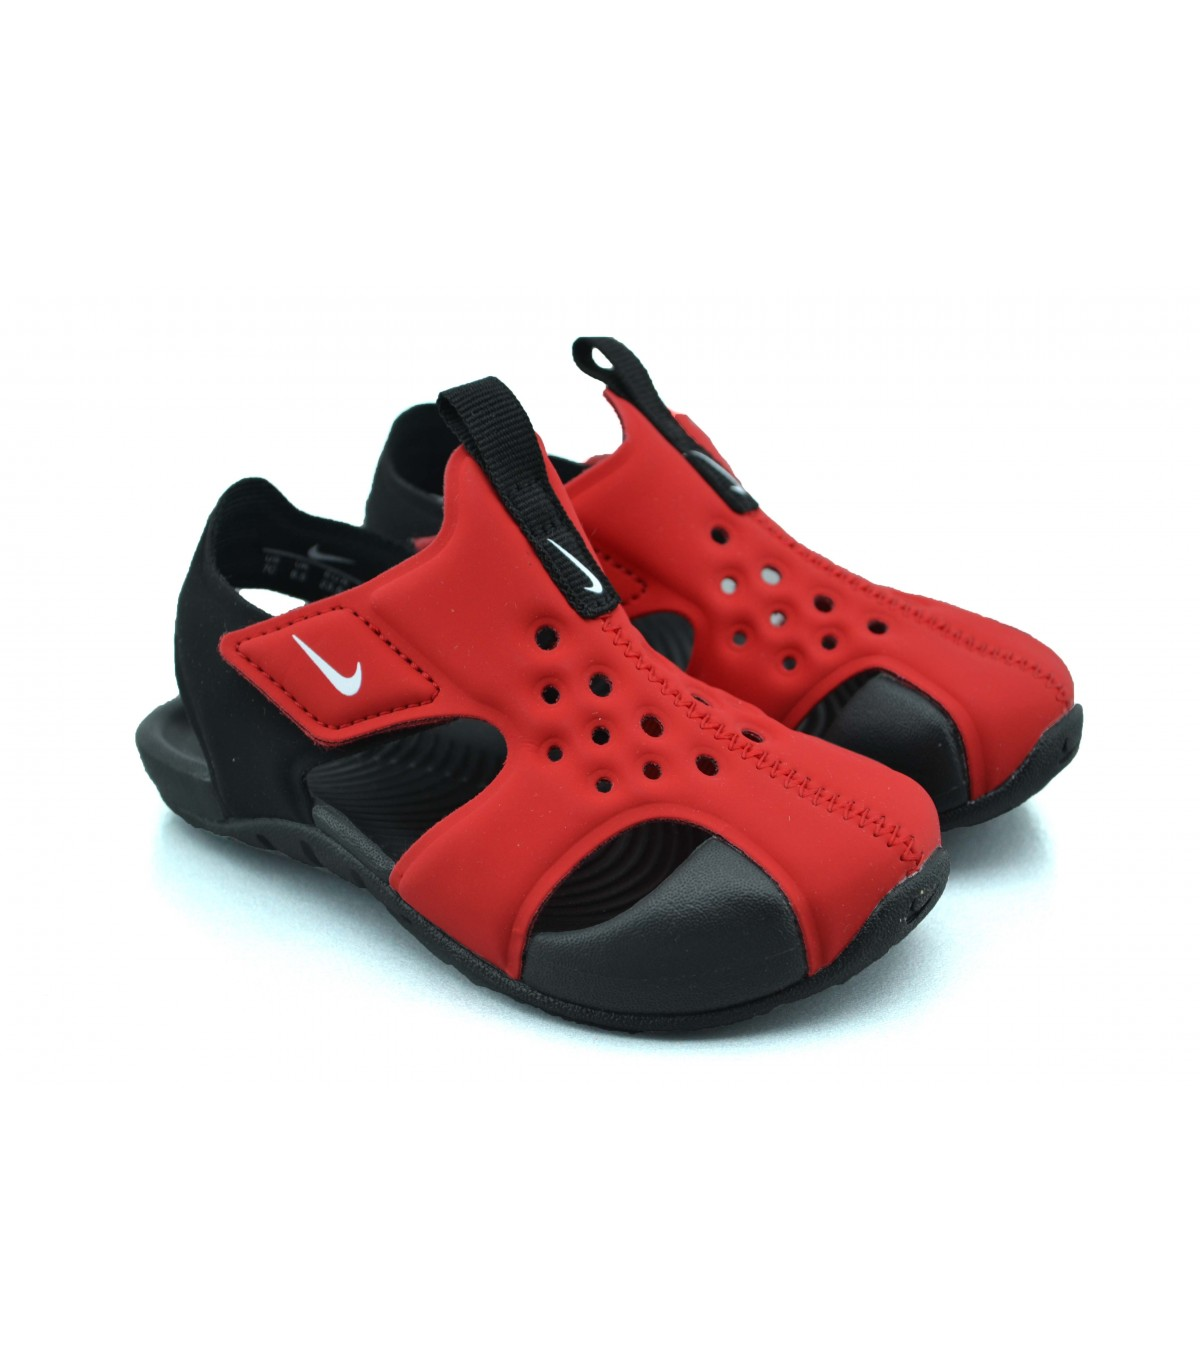 Sunray Kids Sunray Chanclas Nike Kids Chanclas Red Nike Nike Red Red Sunray Chanclas pSUzMVGLq